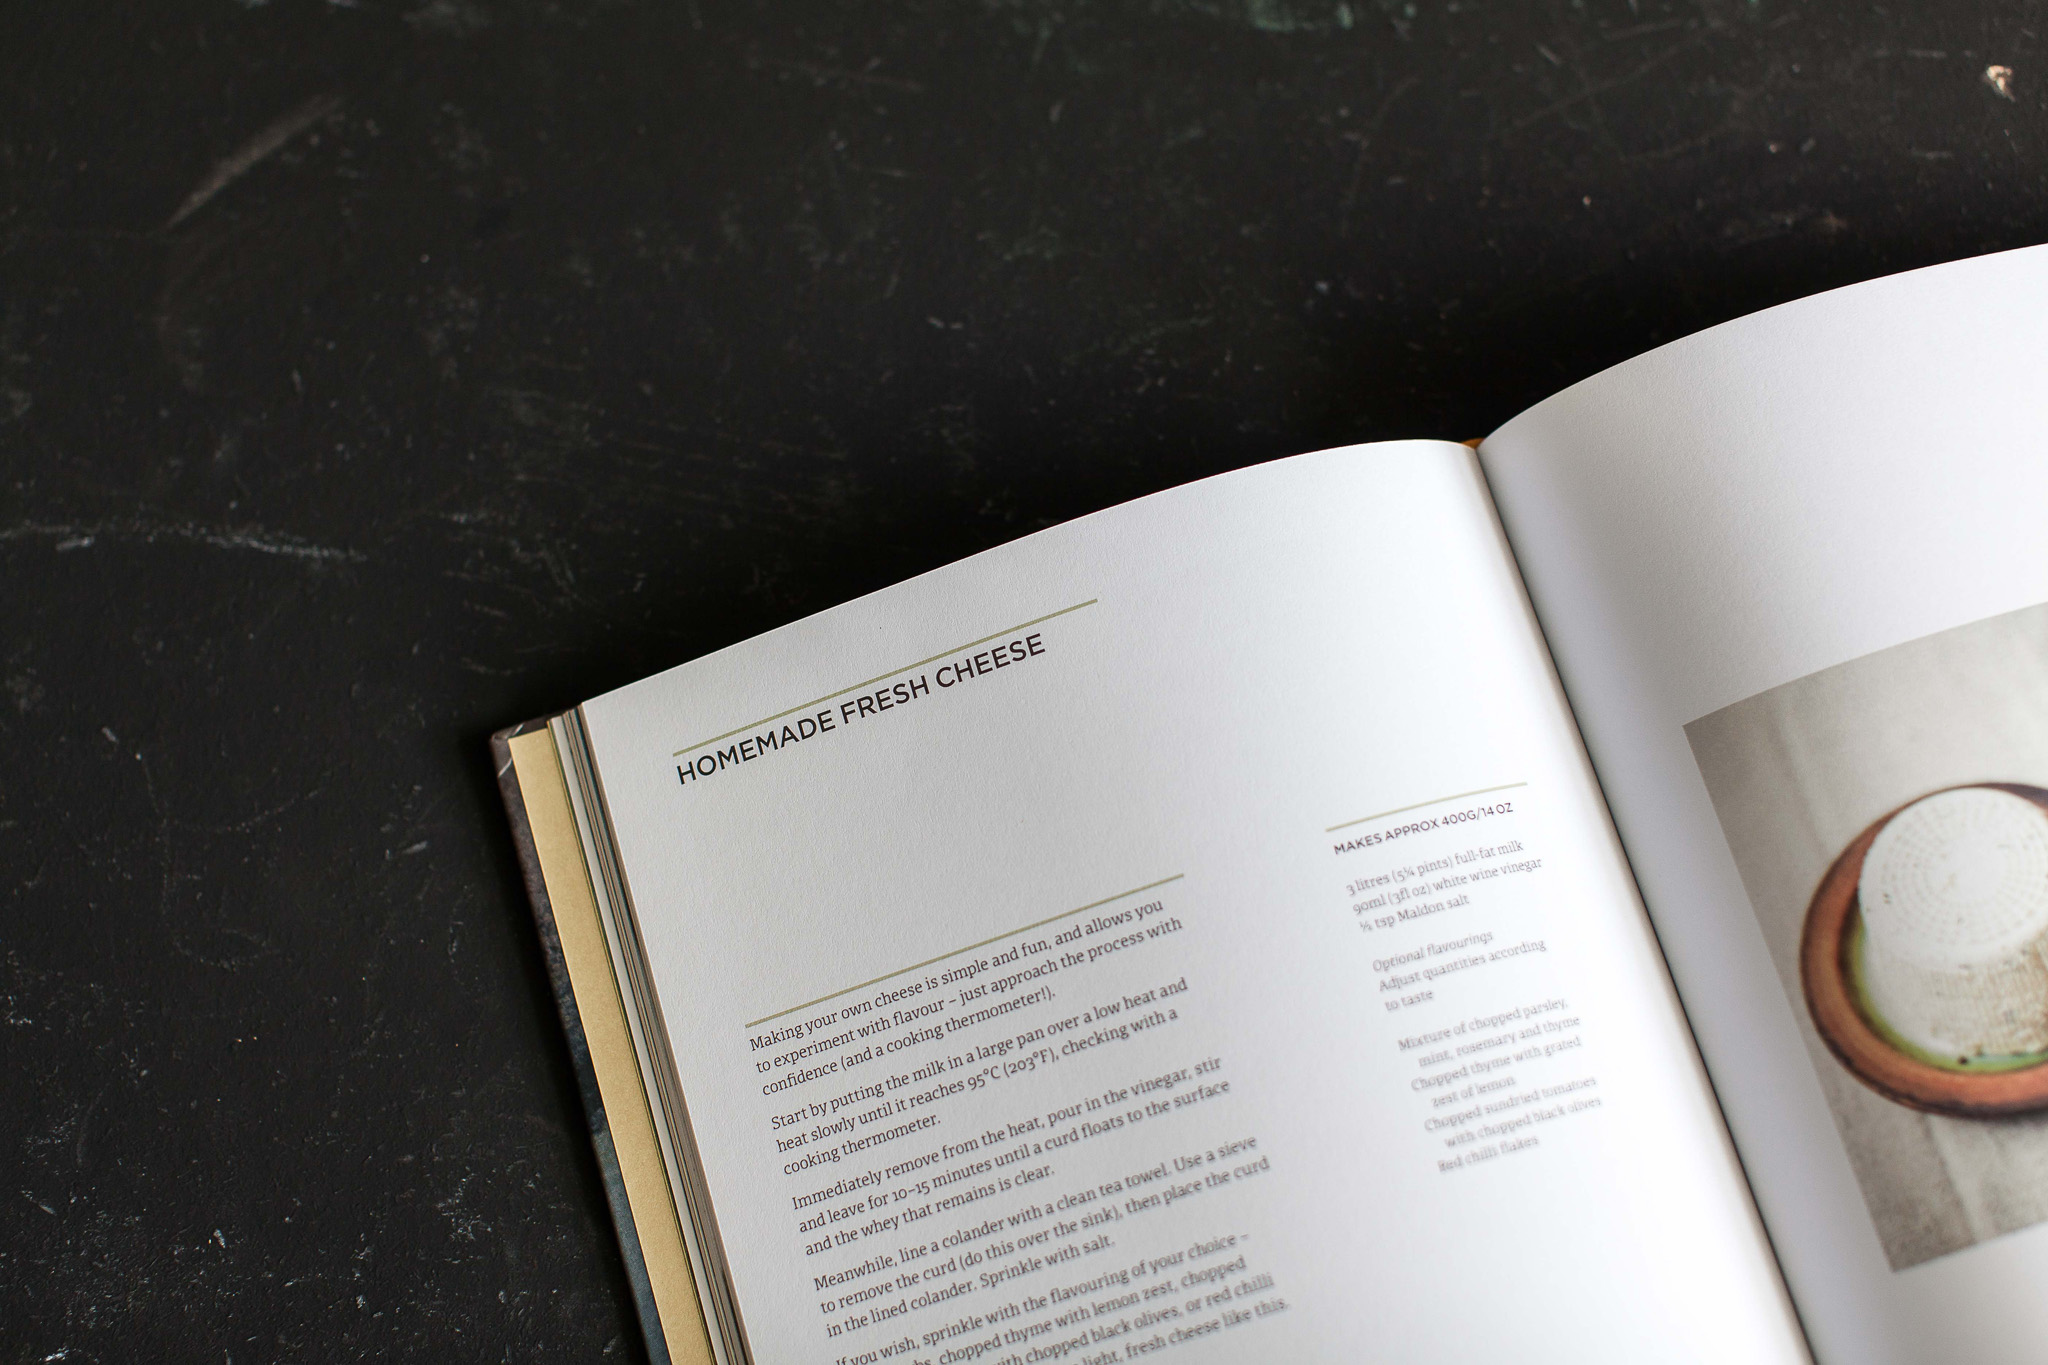 A Year of Cheese // A gorgeous book about seasonal cheese from one of the worlds most famous artisan cheese shops. Retreat // a Sussex food and lifestyle blog by photographer Emma Gutteridge.